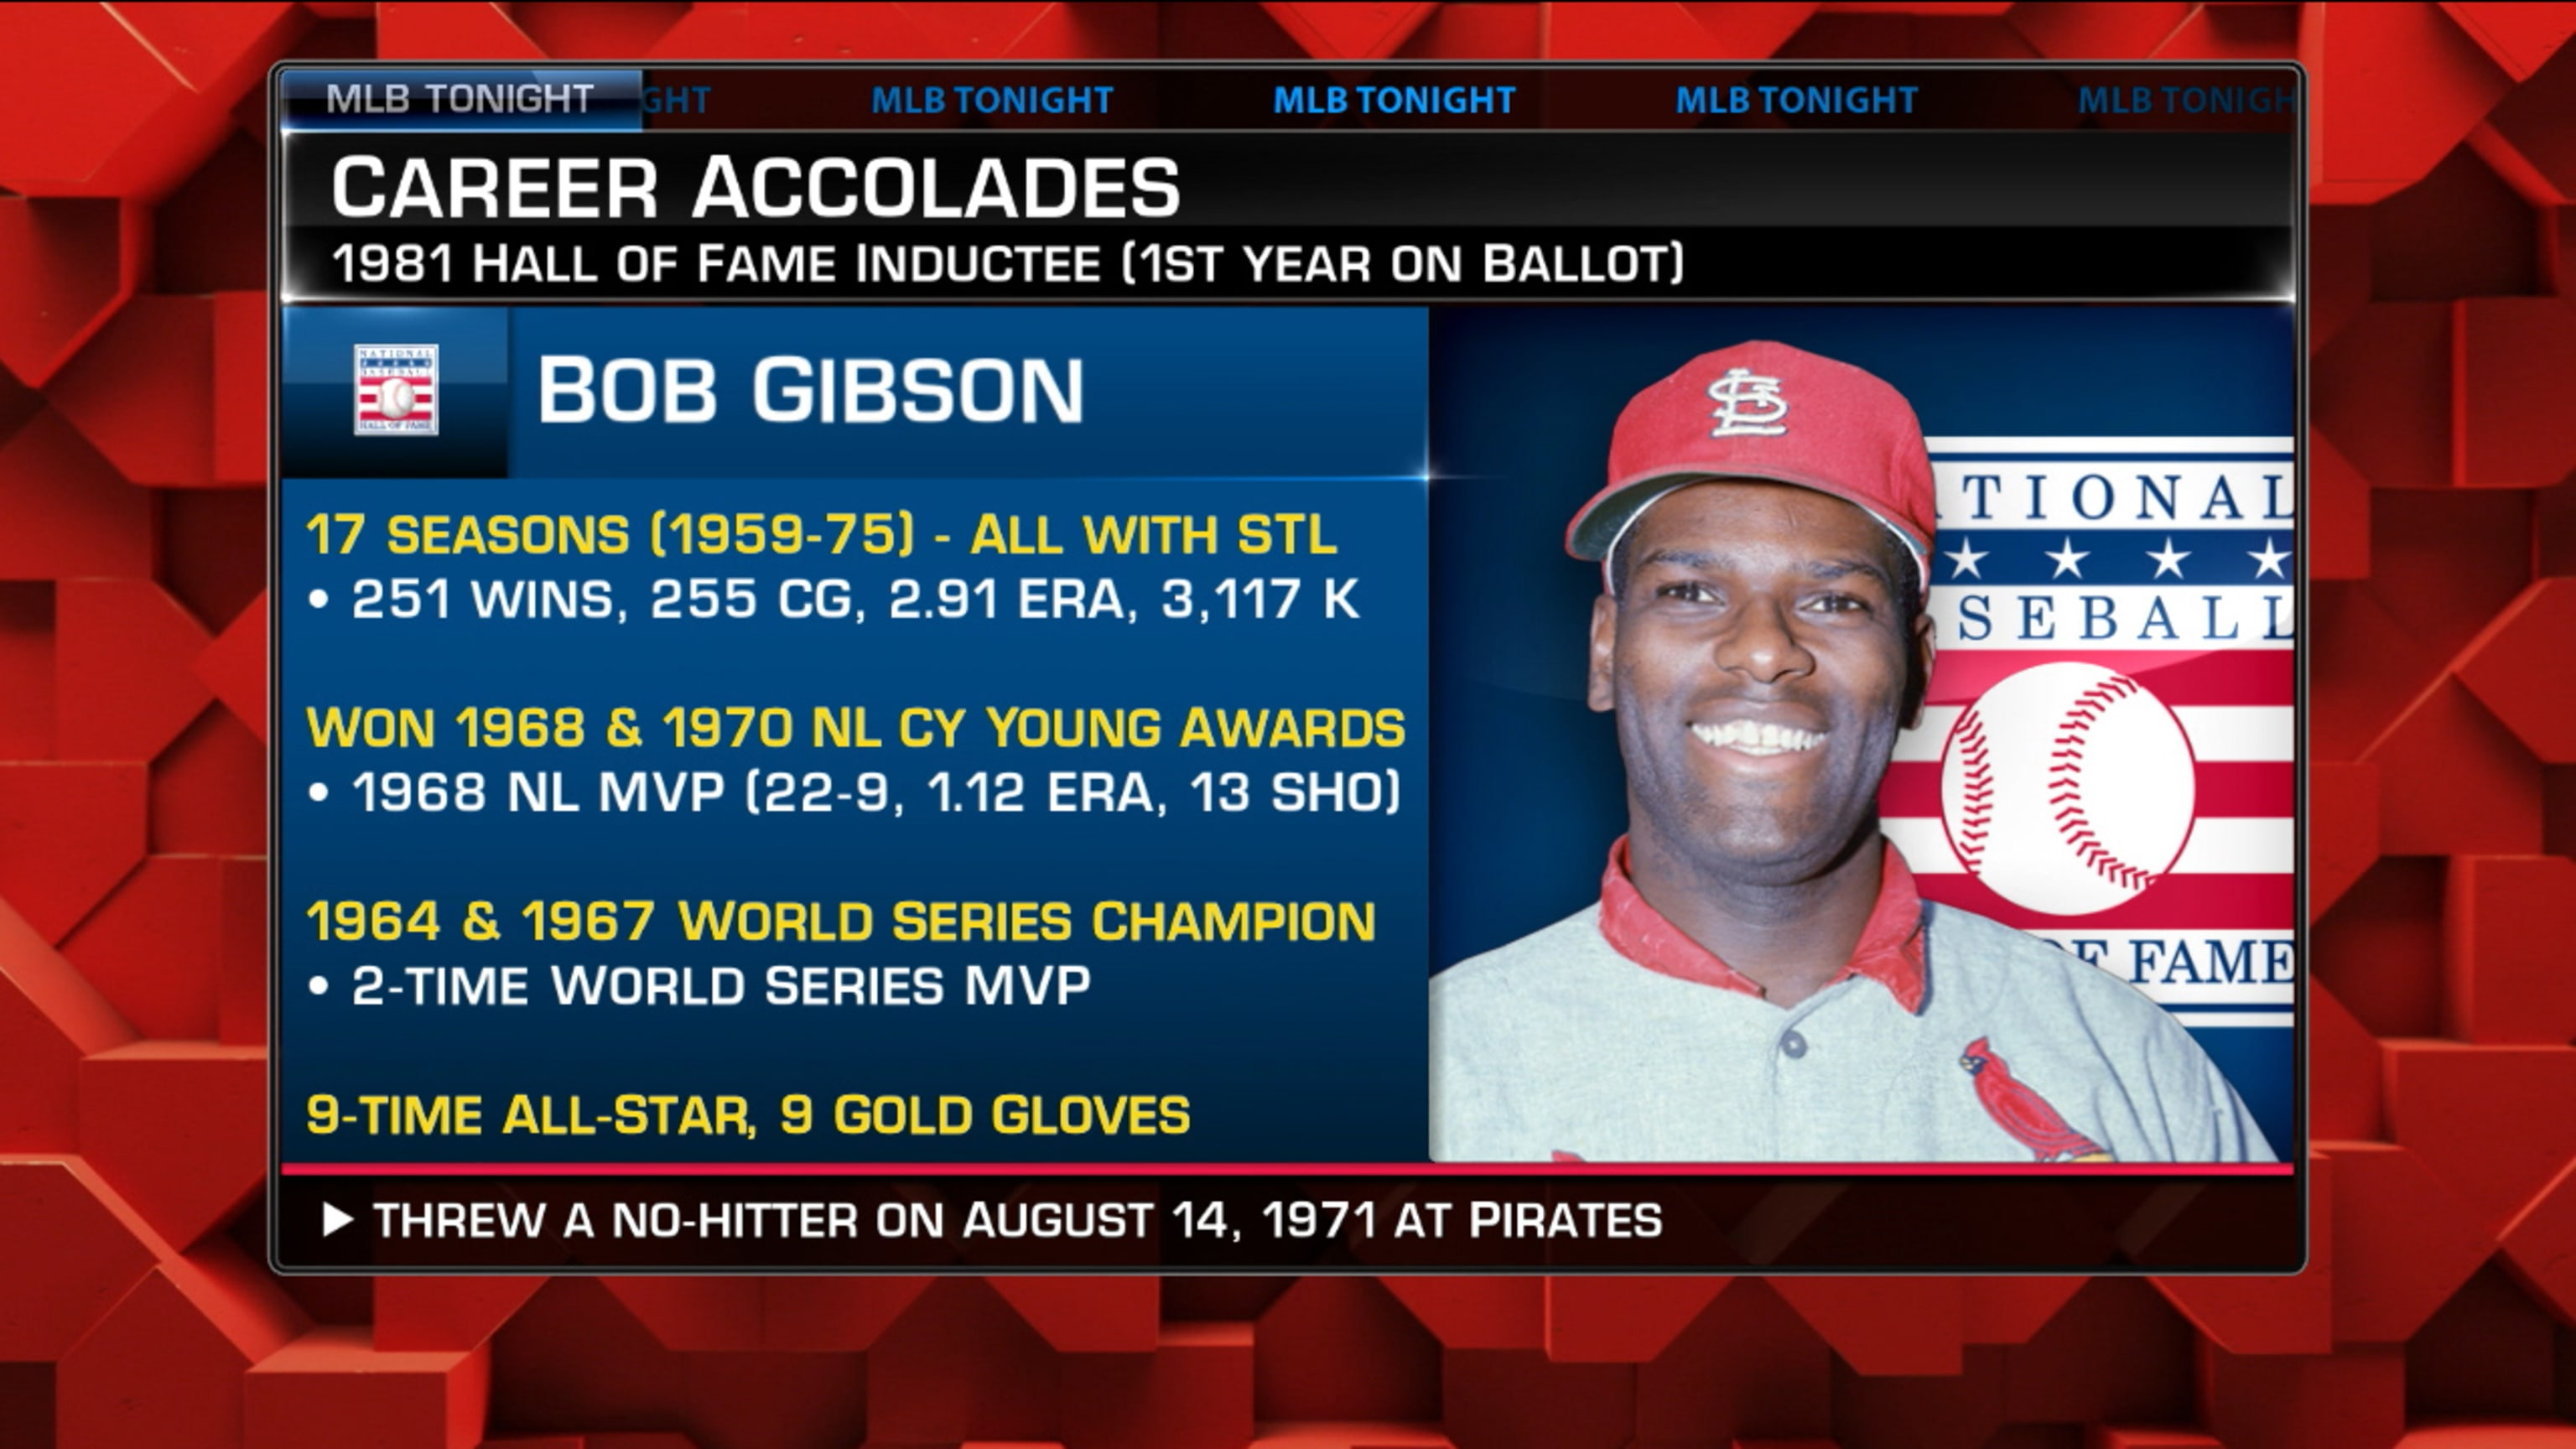 MLB Tonight remembers Bob Gibson